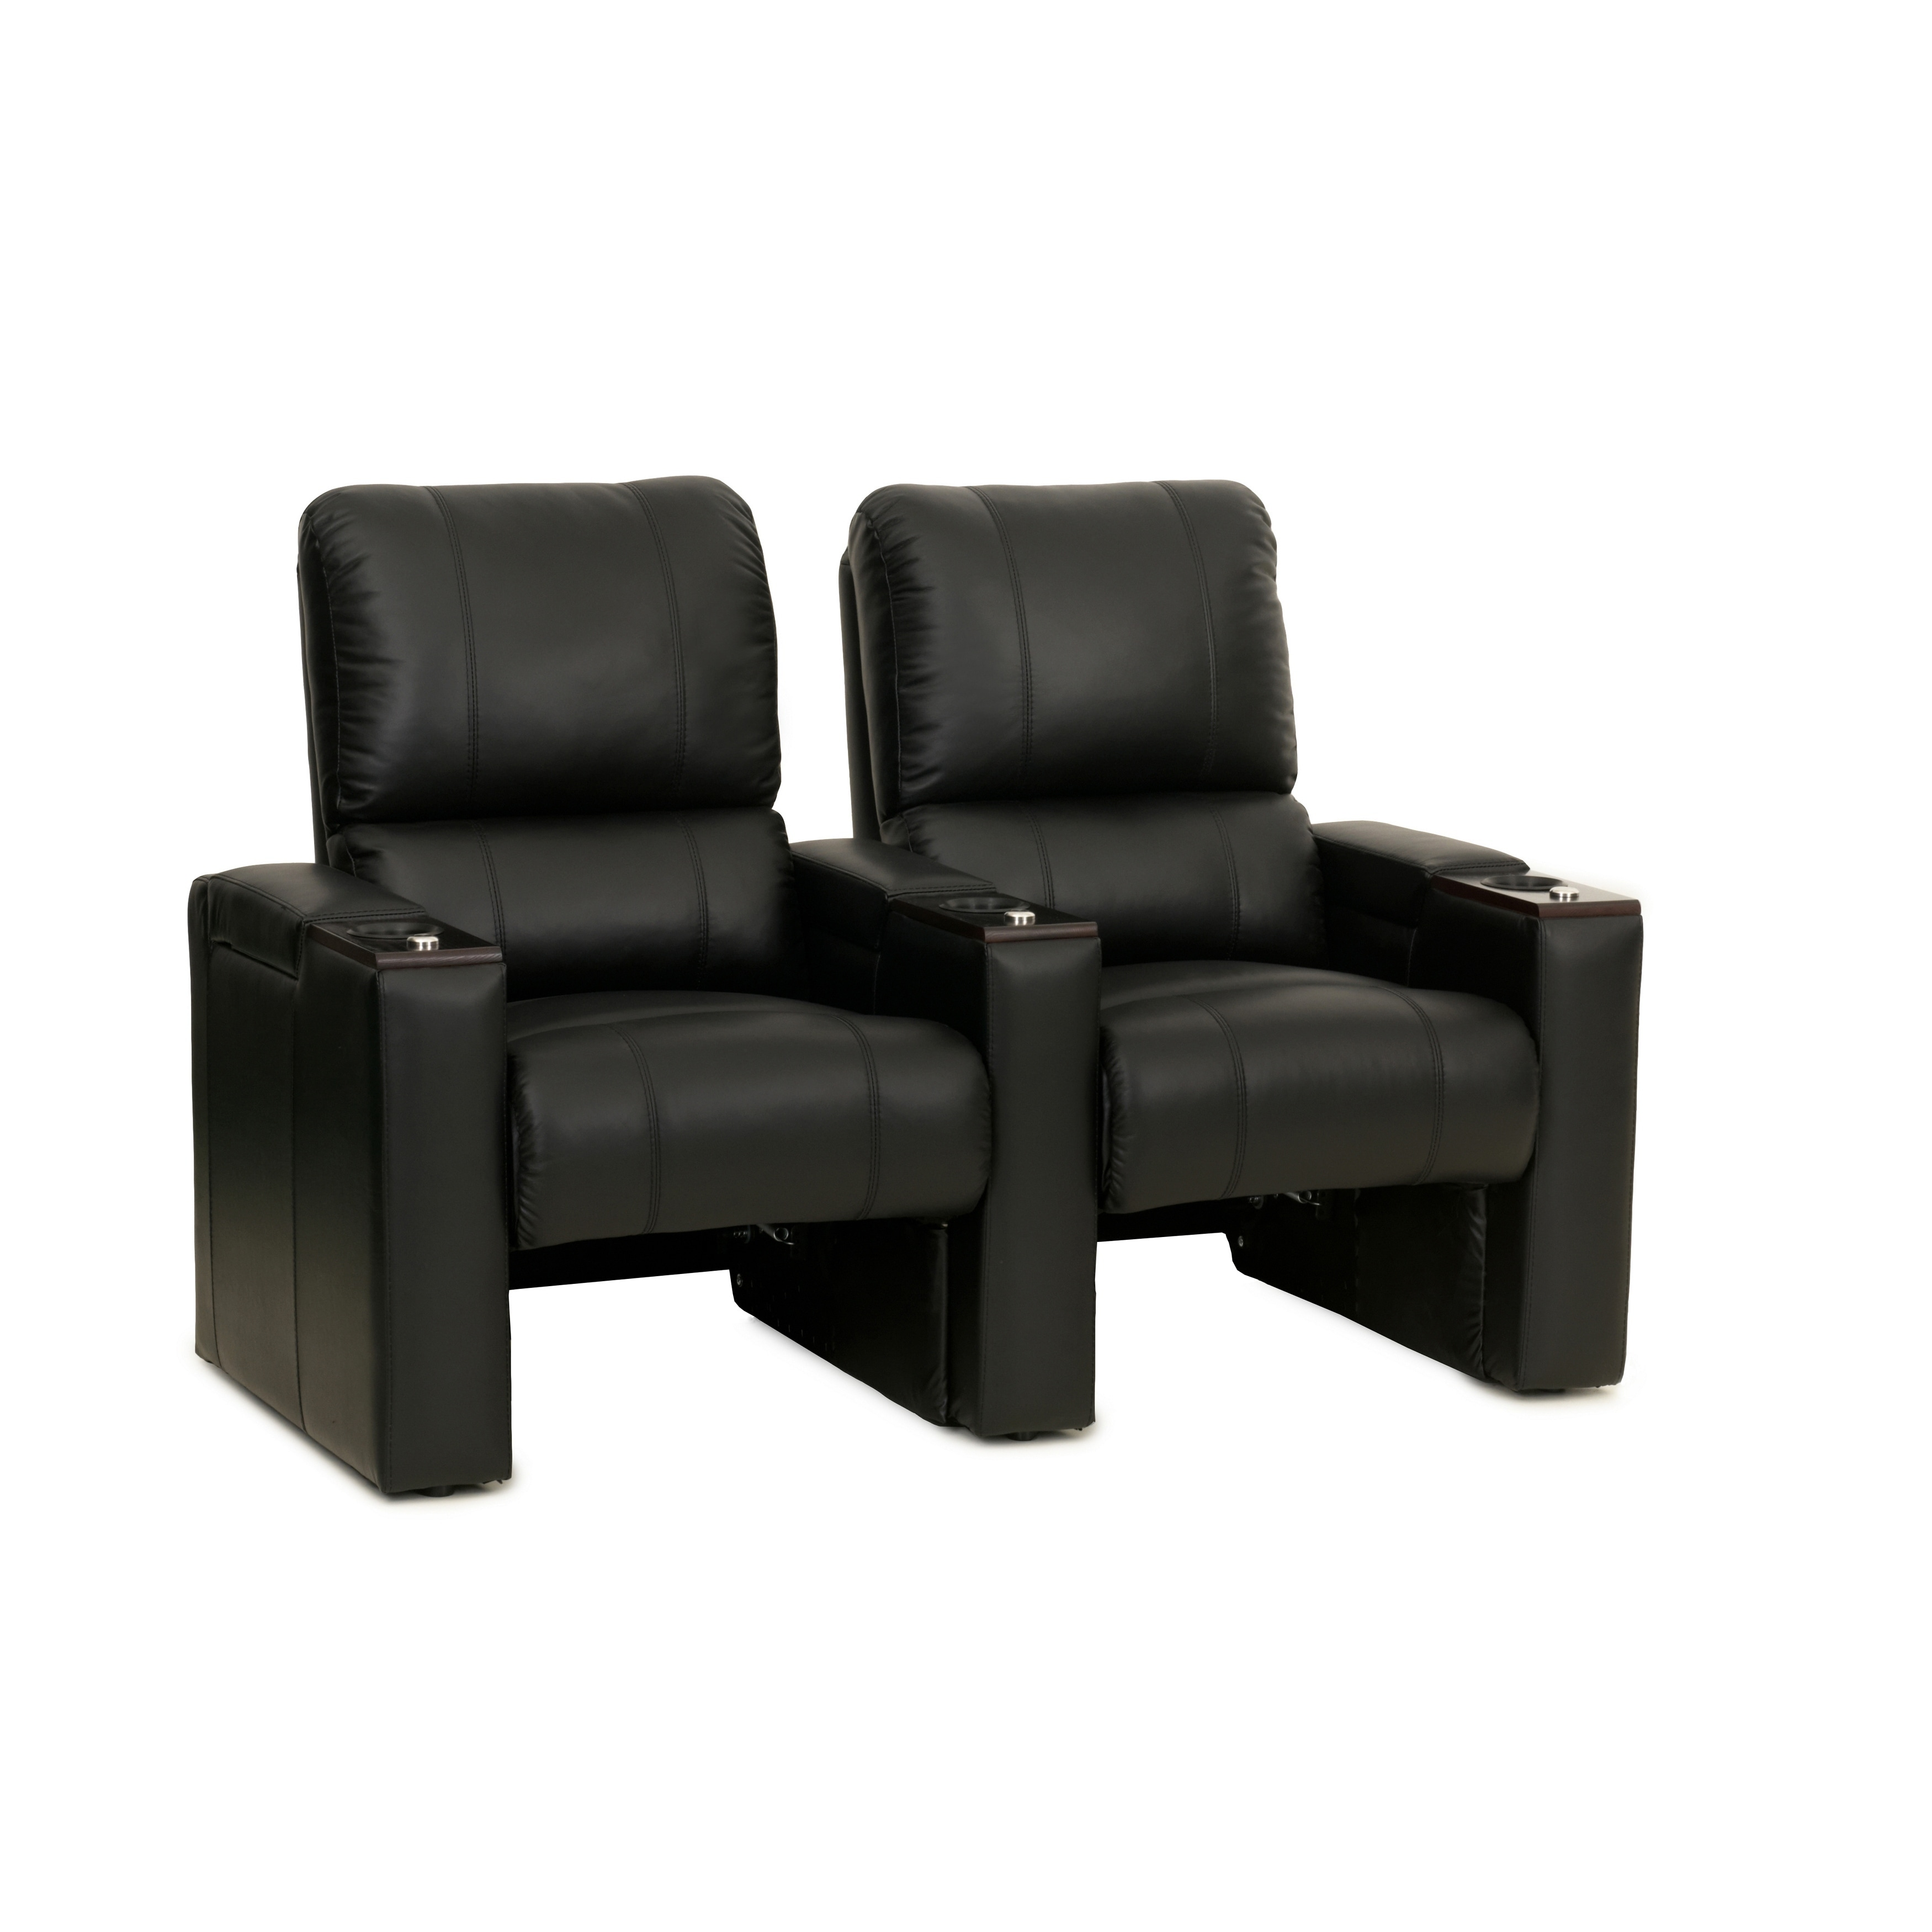 Surprising Details About Octane Axis Zr700 Black Bonded Leather Recliner Home Theater Seating Set Row Of Pdpeps Interior Chair Design Pdpepsorg